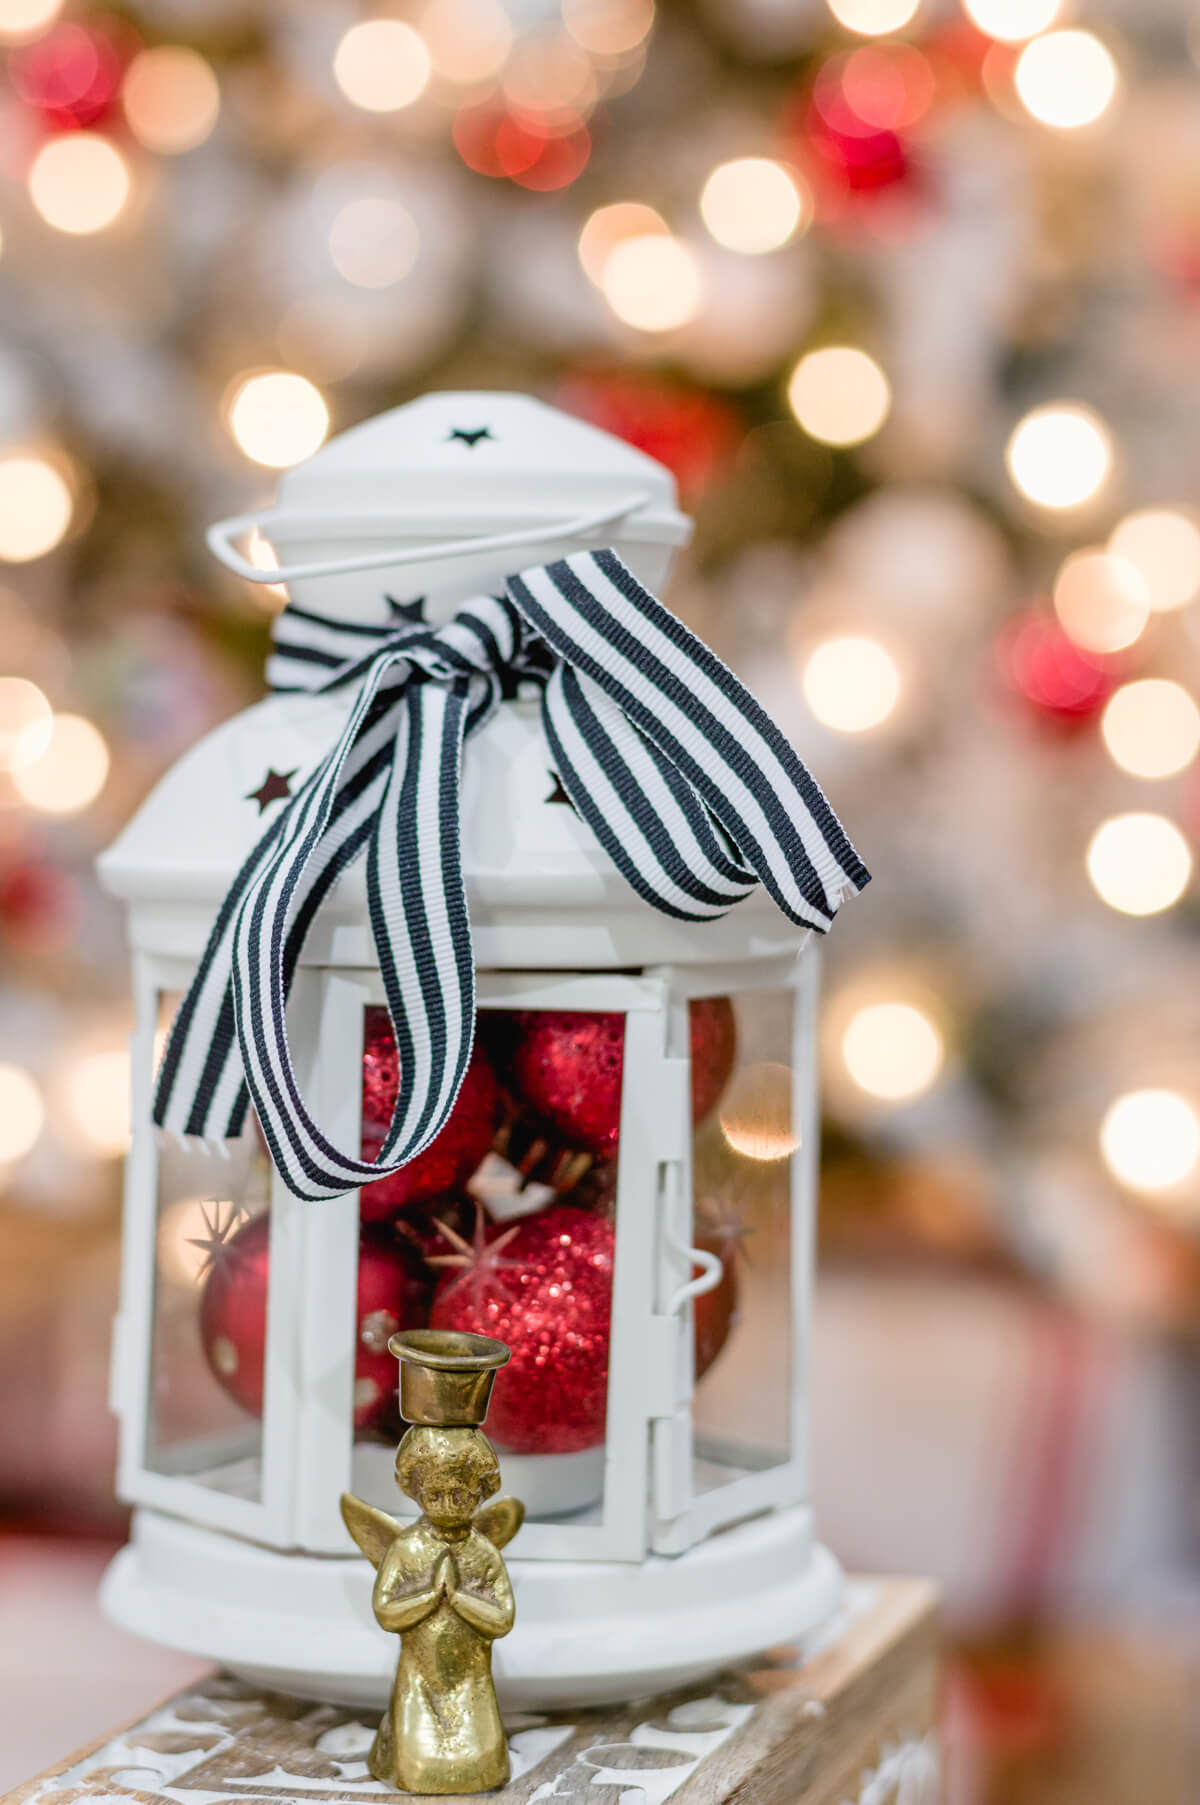 small-white-lantern-with-ornaments